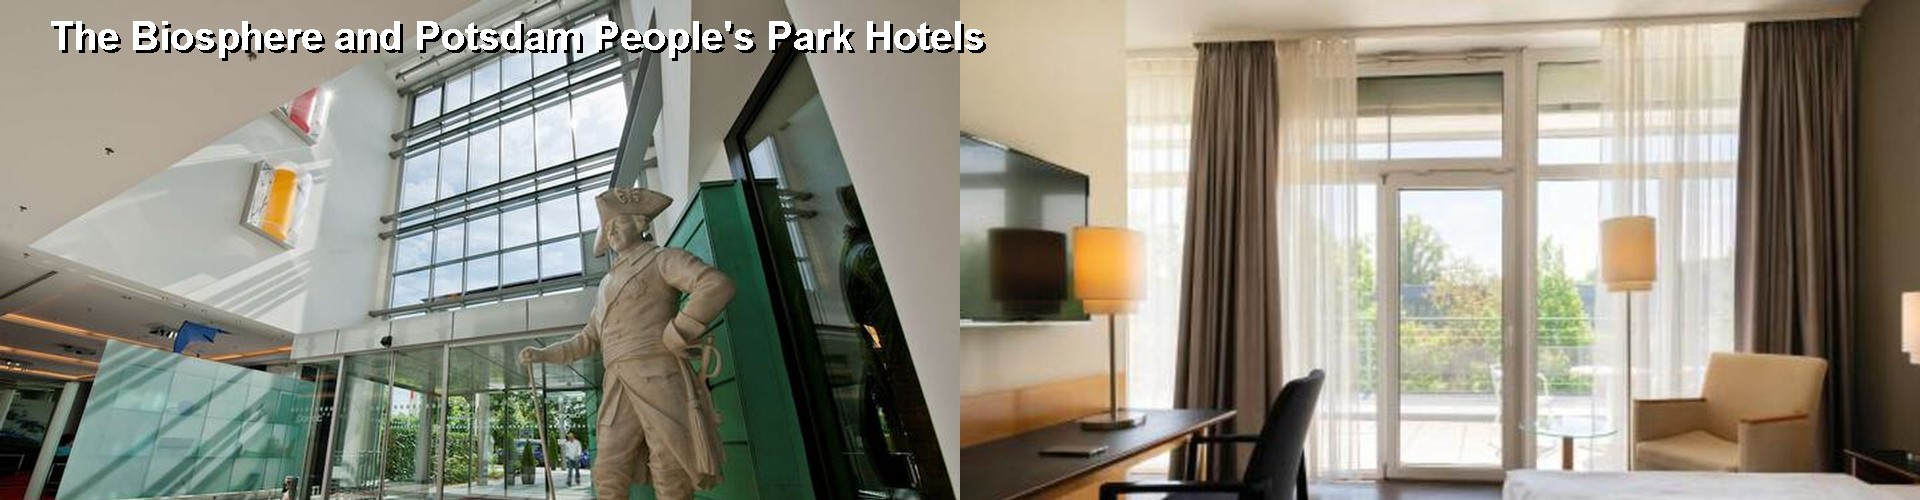 5 Best Hotels Near The Biosphere And Potsdam People S Park